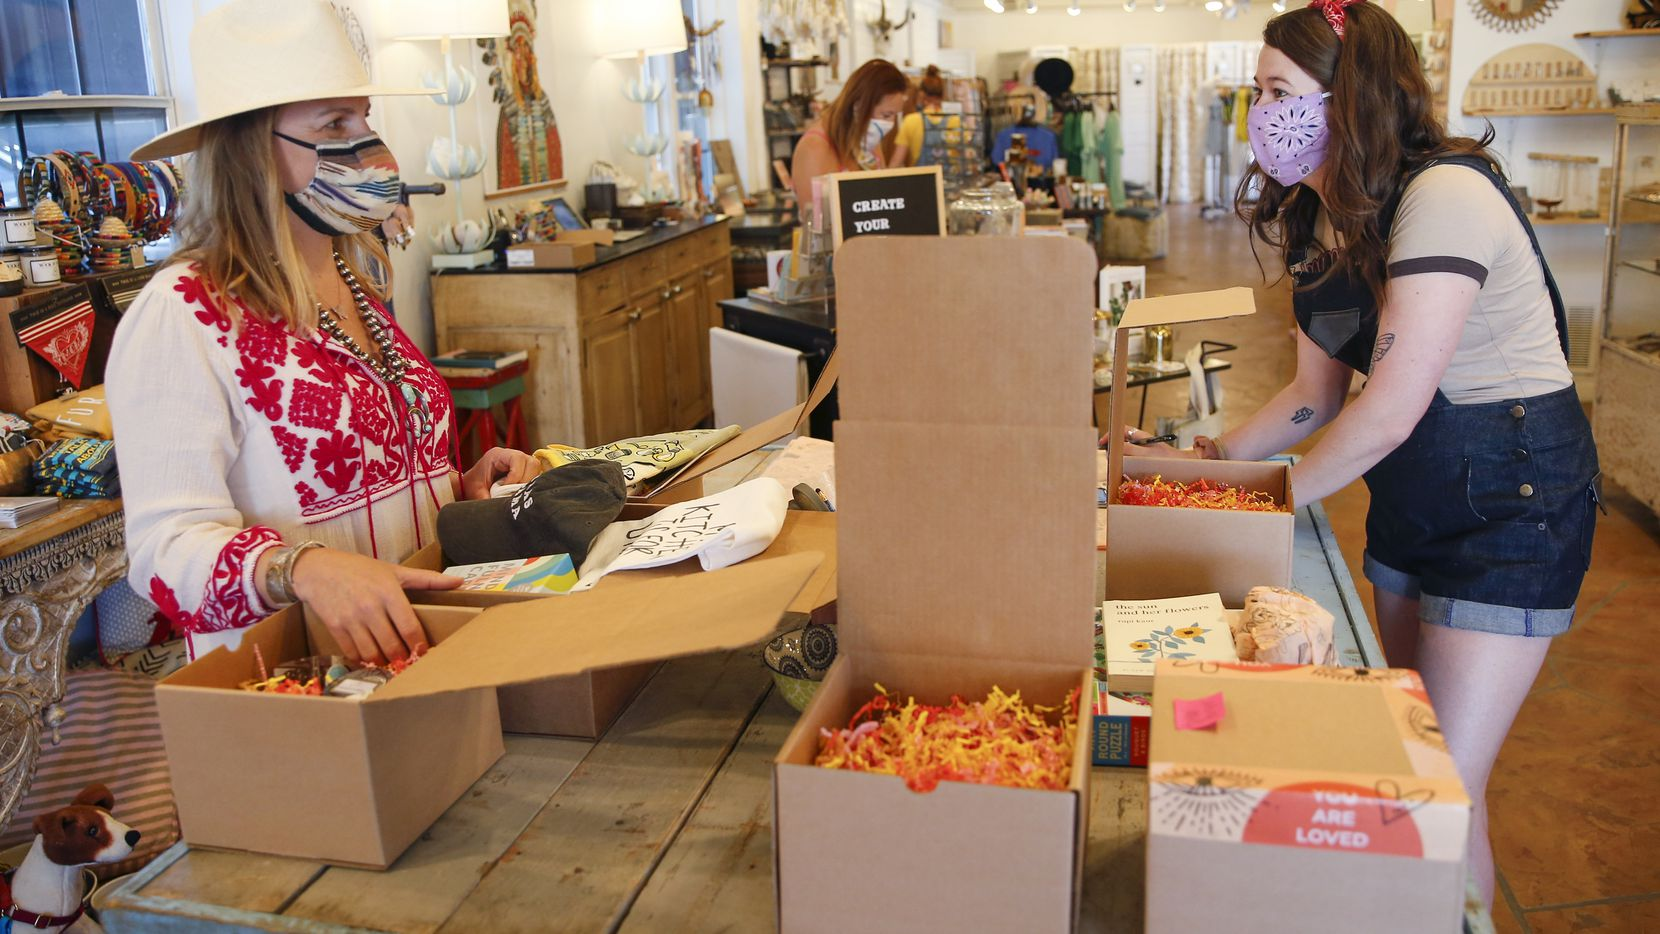 Owner Carley Seale, left, helps pack up orders with Mary Walton at Favor The Kind store in Dallas on Thursday.